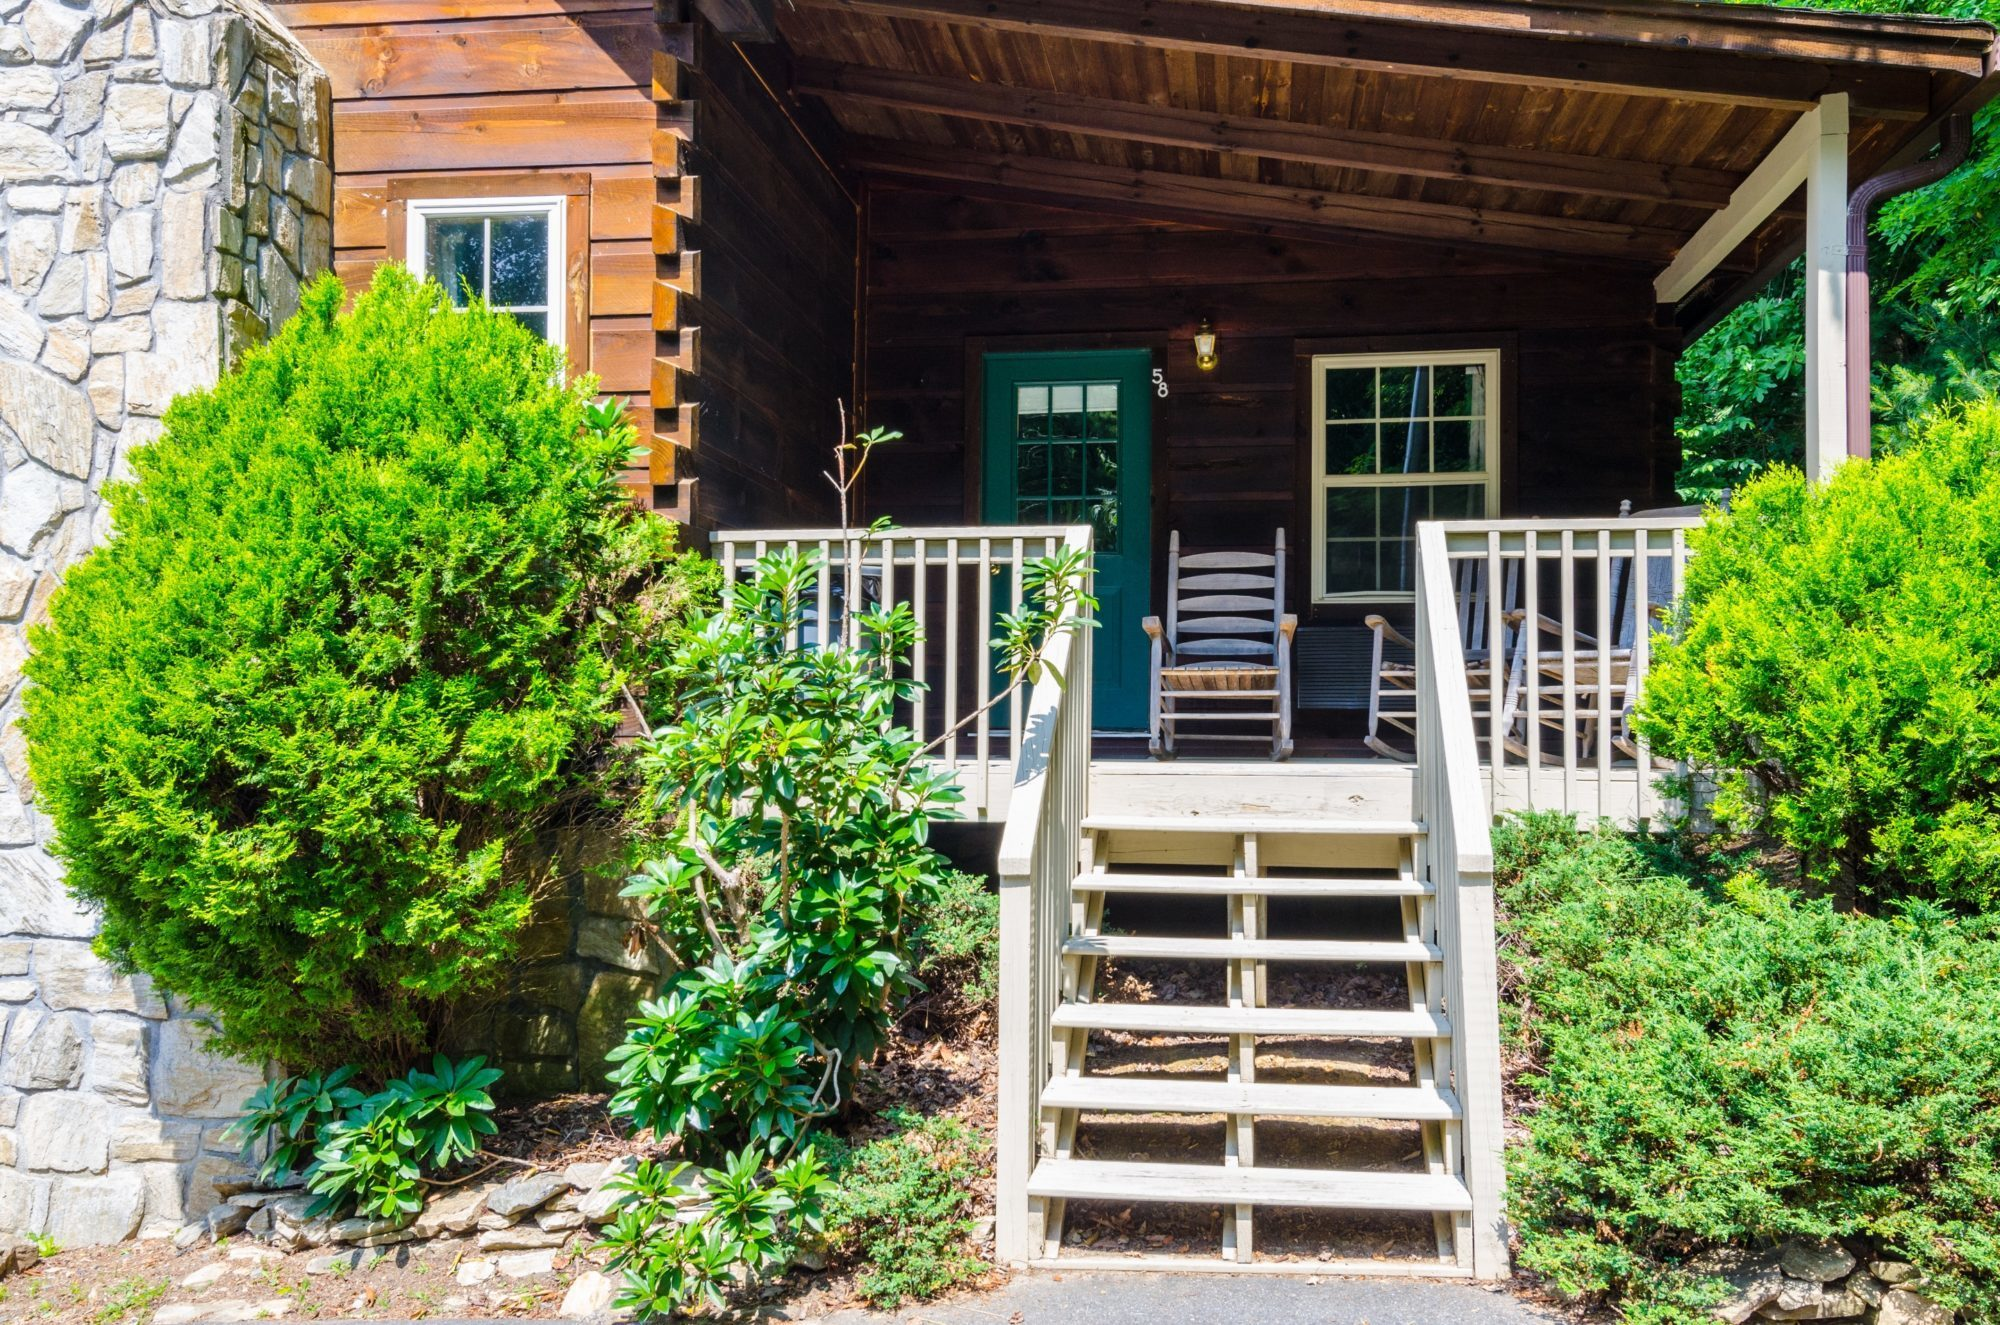 Cabin exterior showing wooden steps with small bushes leading to entrance door and porch area with rocking shairs